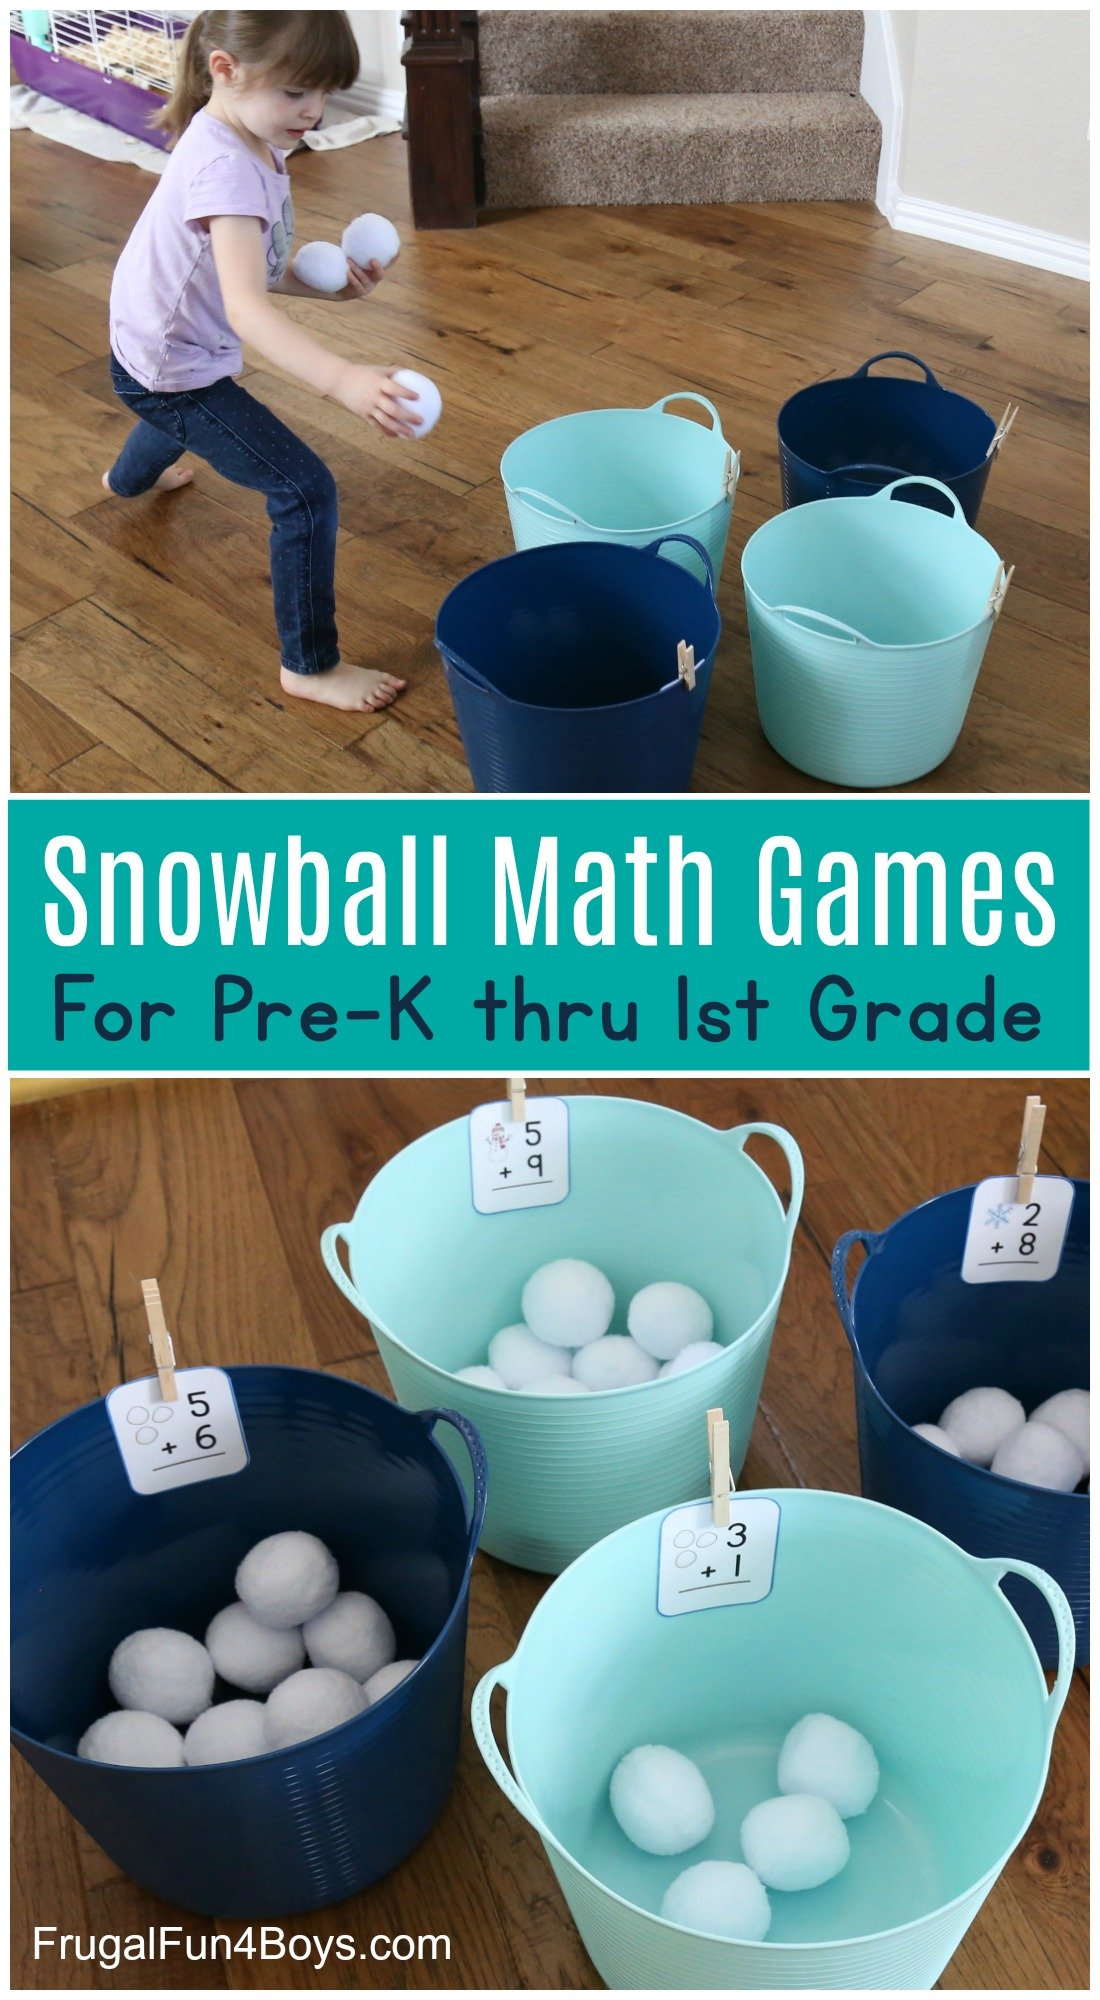 child throwing balls into labelled buckets for snowball math game